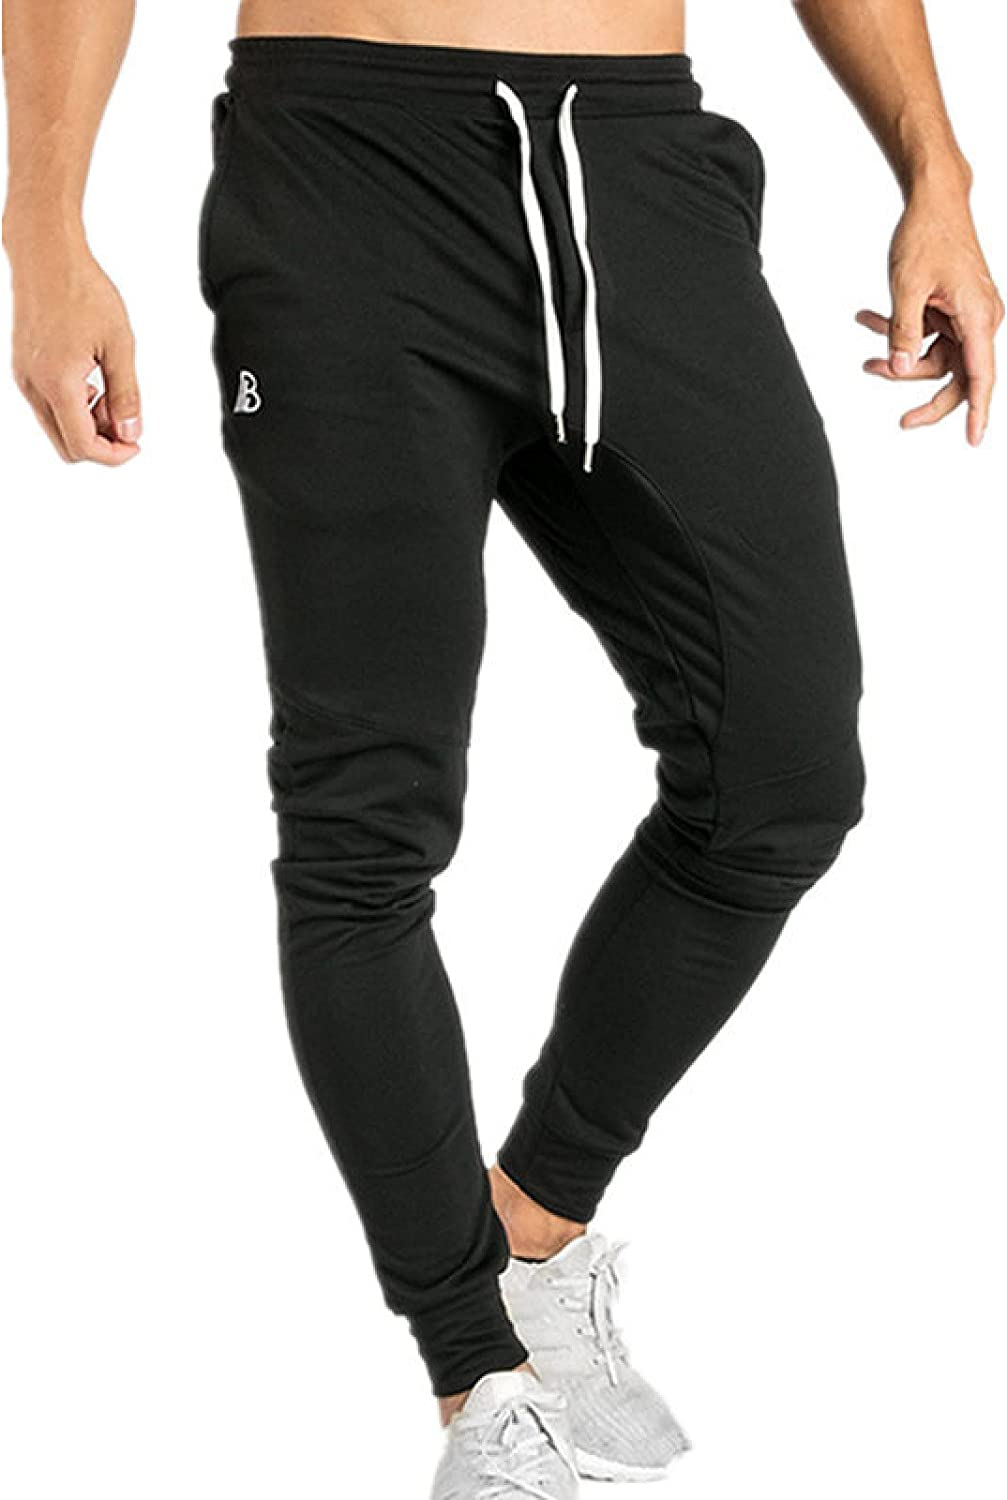 Men's Casual Pants Summer Thin Tucson Mall Max 41% OFF All-Match Loose Elastic Pa